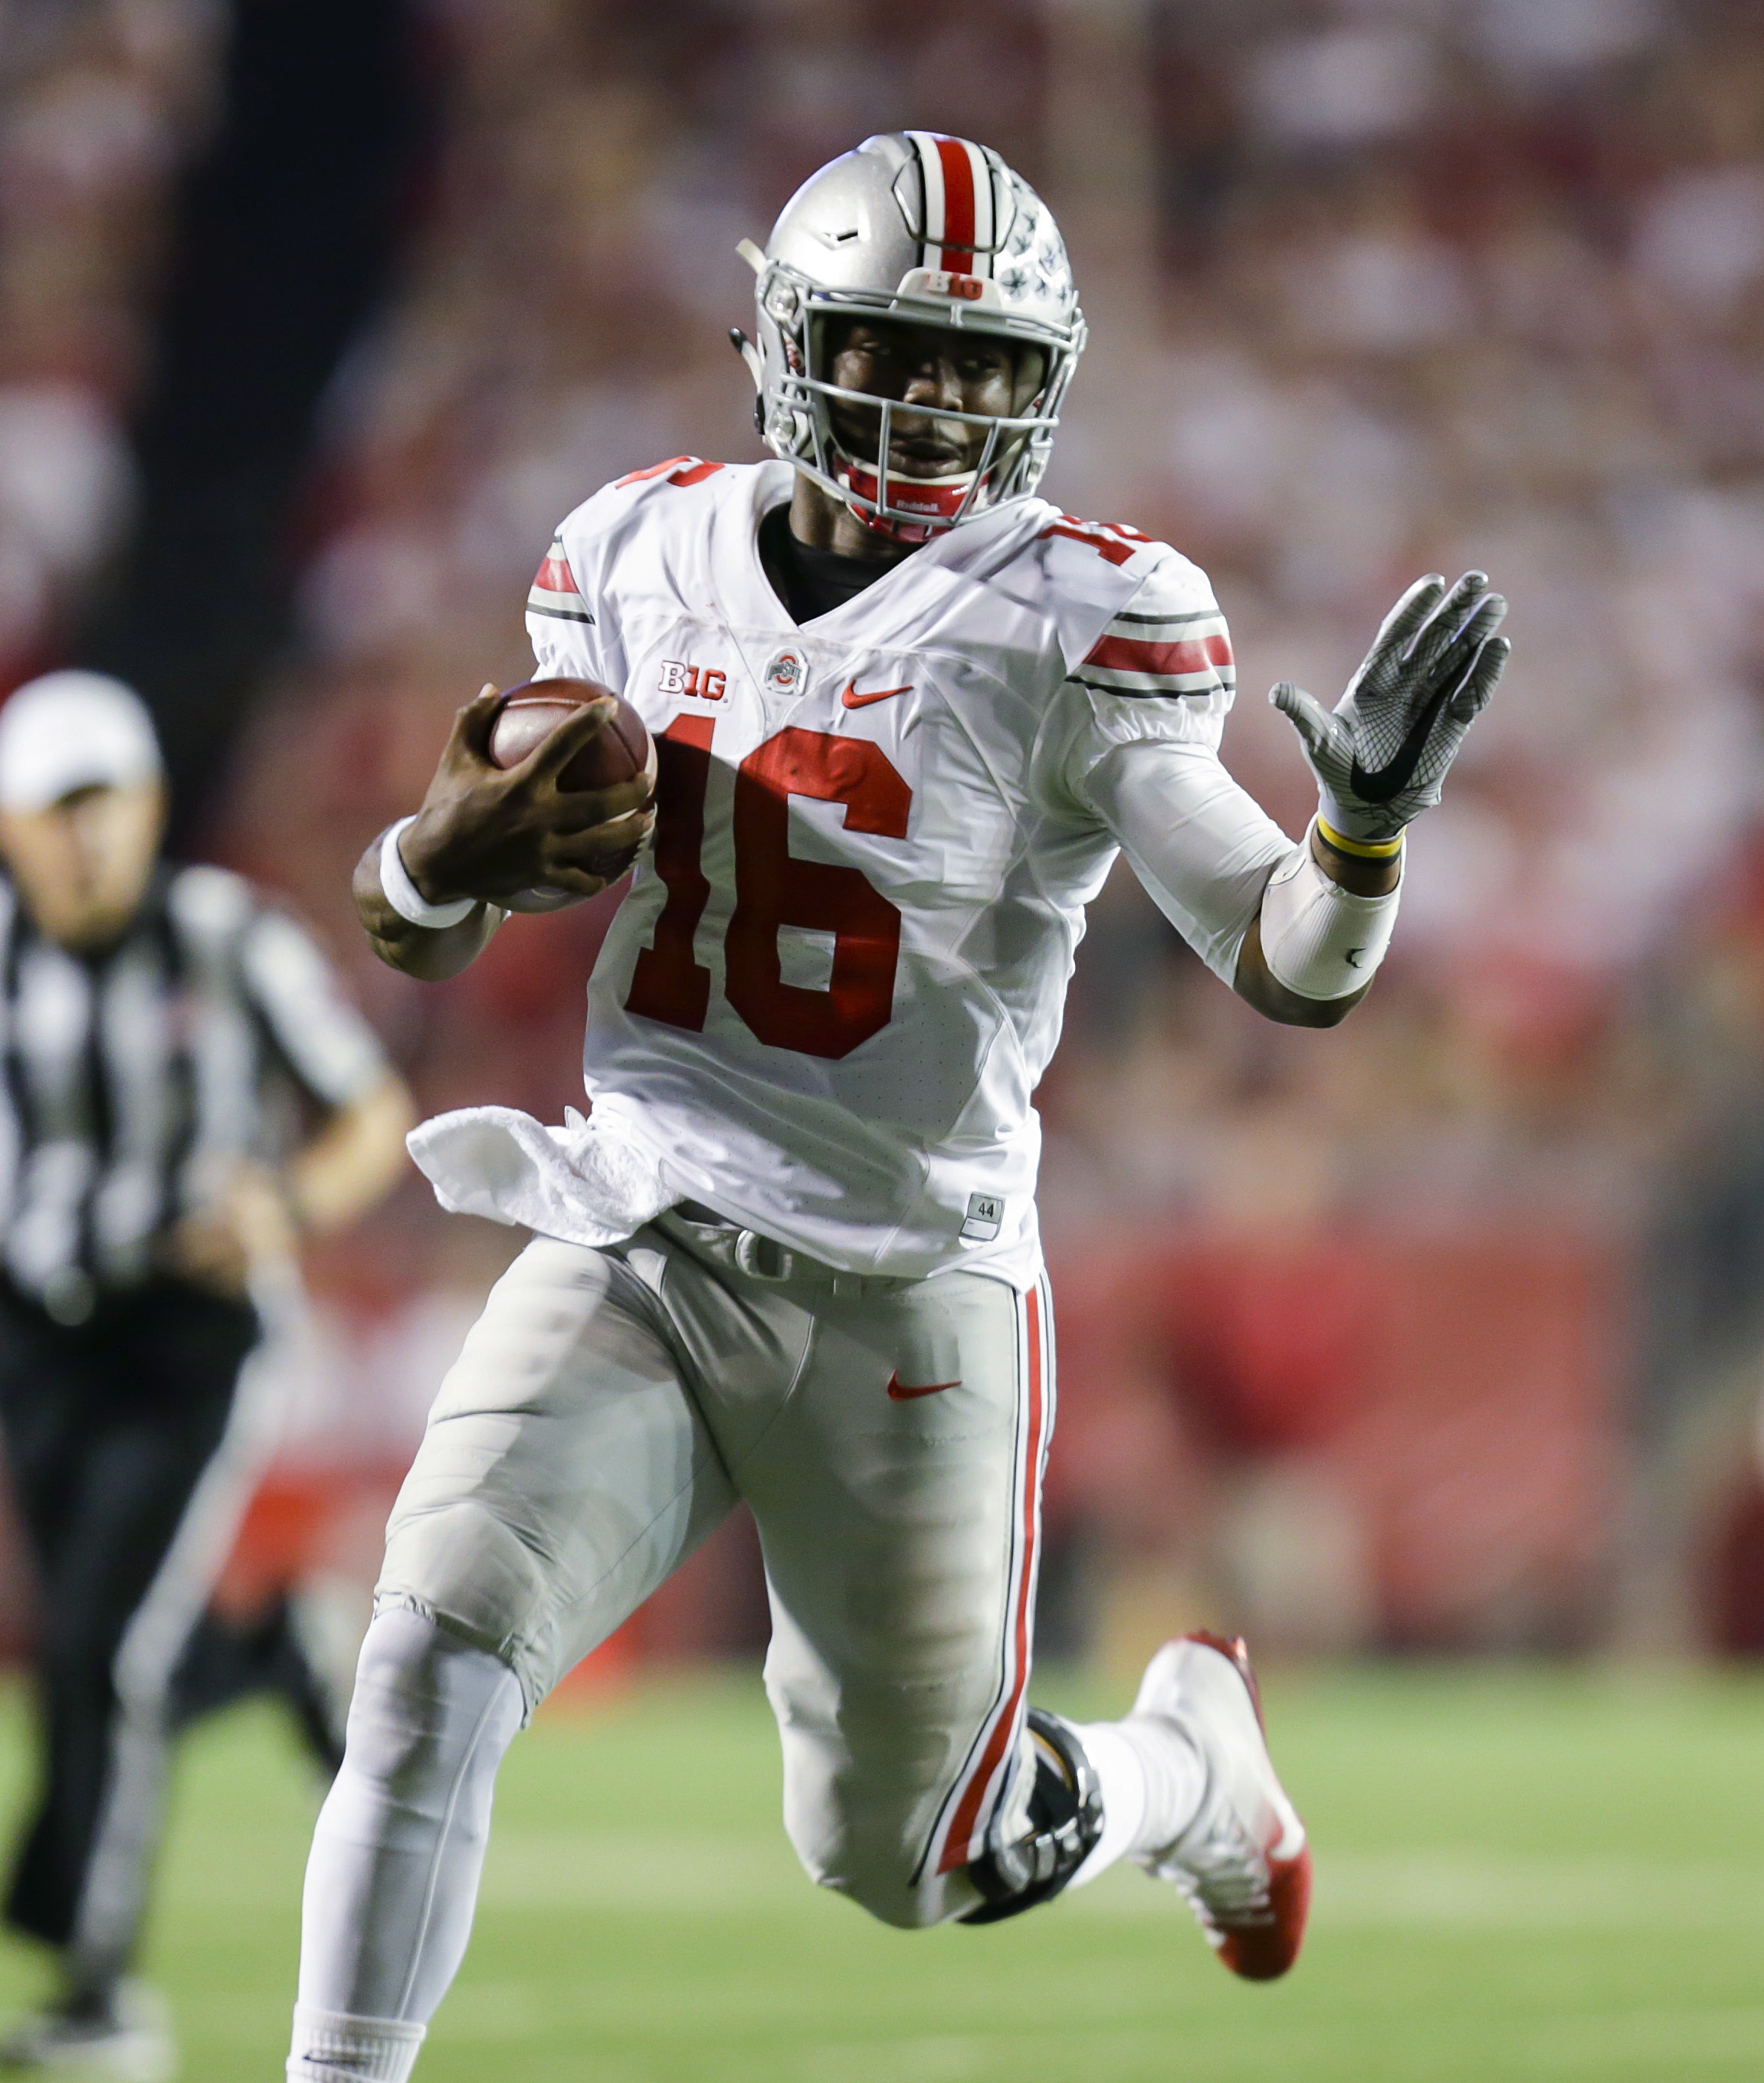 FILE - In this Oct. 15, 2016, file photo, Ohio State quarterback J.T. Barrett (16) scrambles against Wisconsin during the first half of an NCAA college football game, in Madison, Wis. Barrett was big-time in prime time last week and now he has two more sh